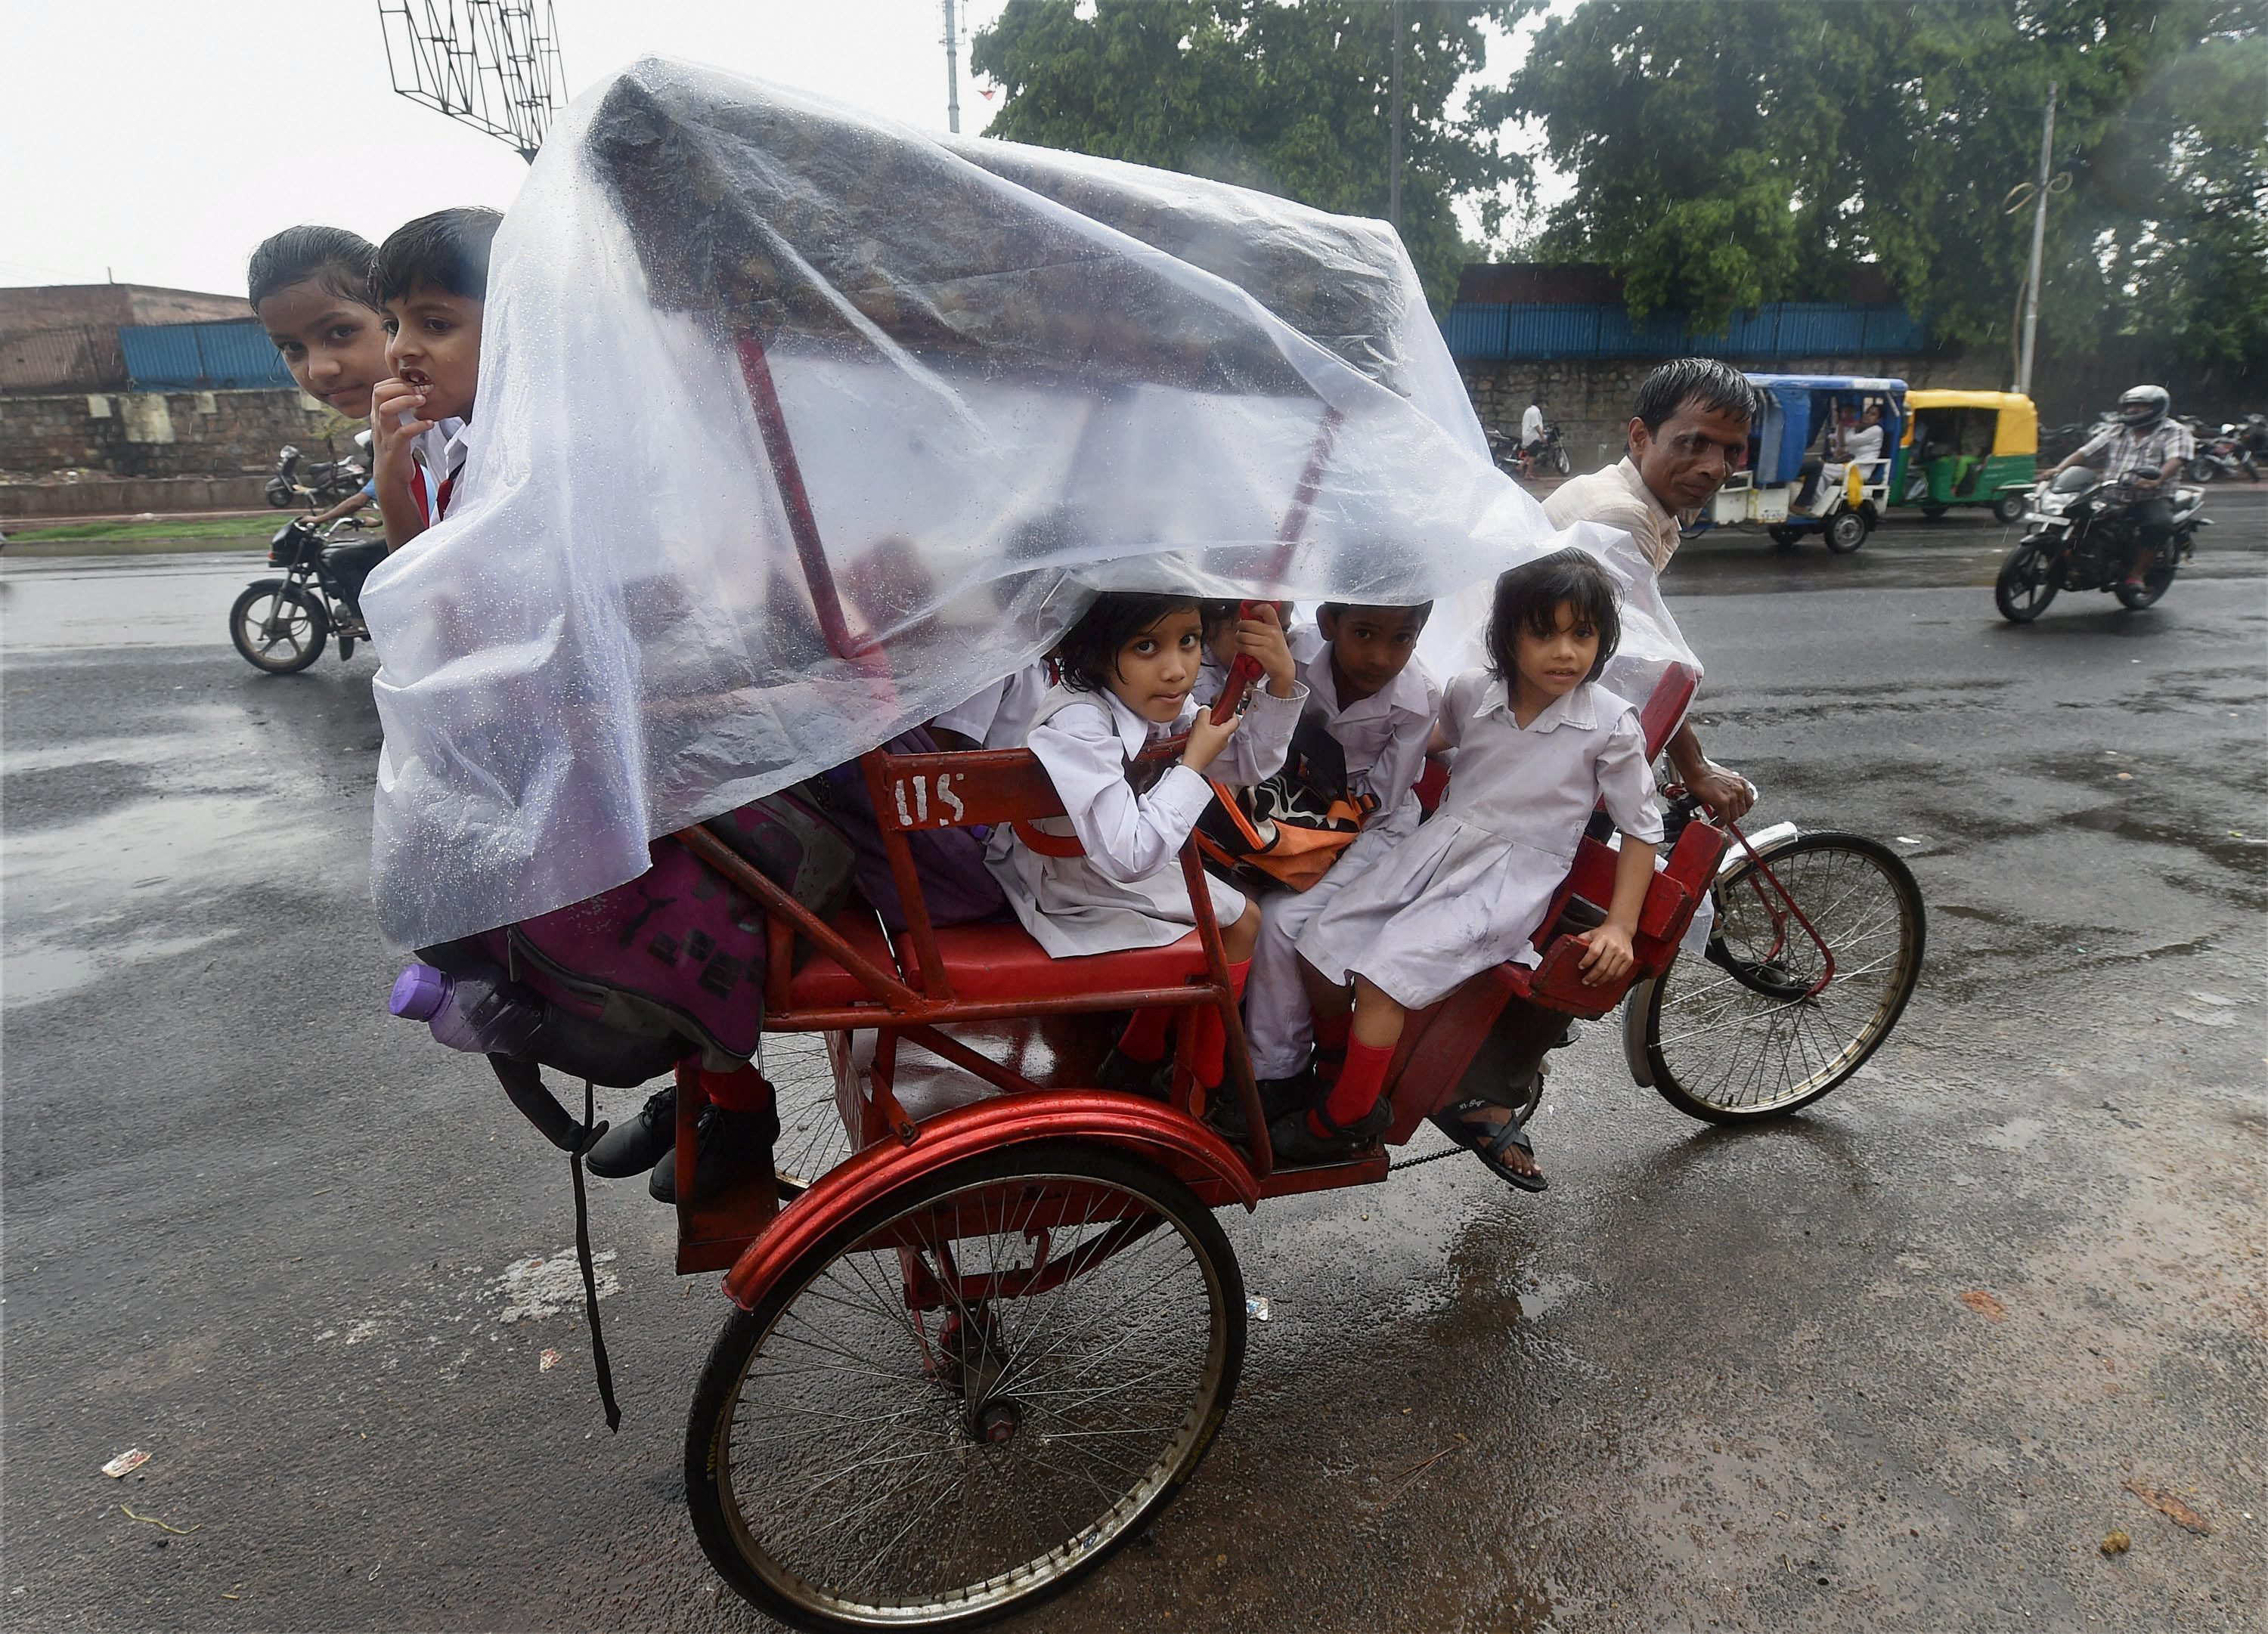 Schoolchildren take shelter in a cycle rickshaw as it rains in Delhi. (Credit: PTI)